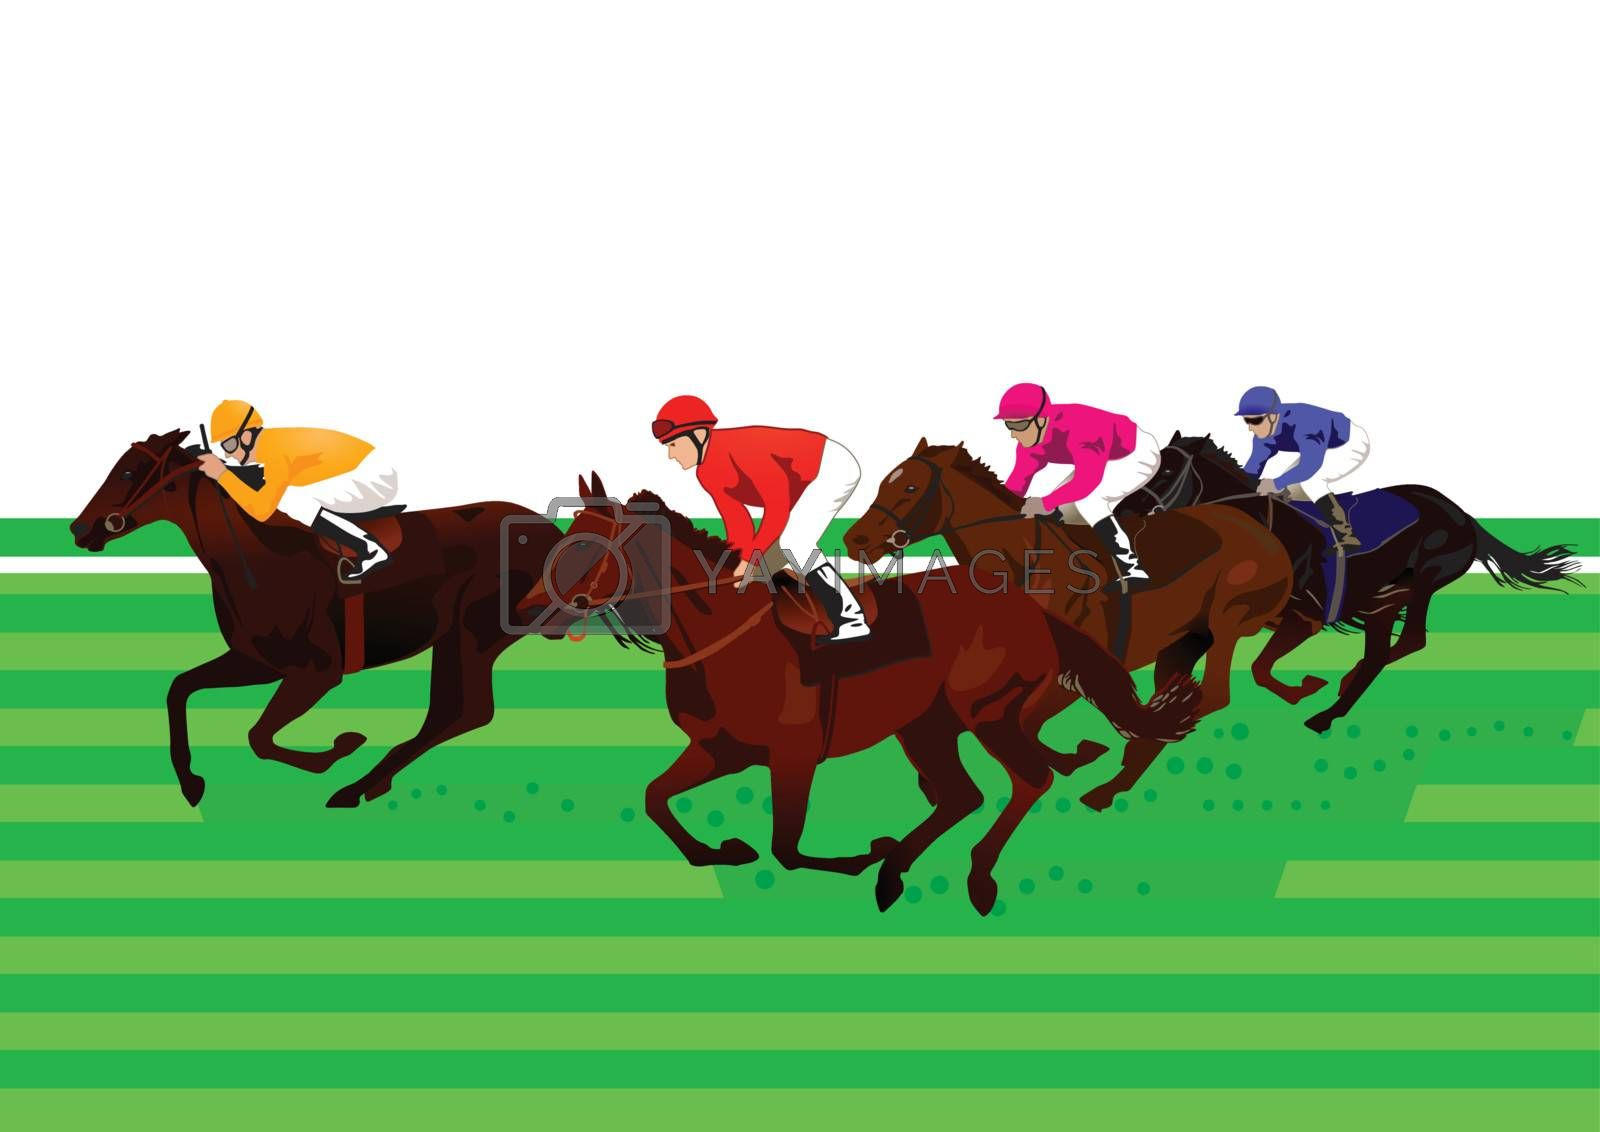 Horse racing and Derby